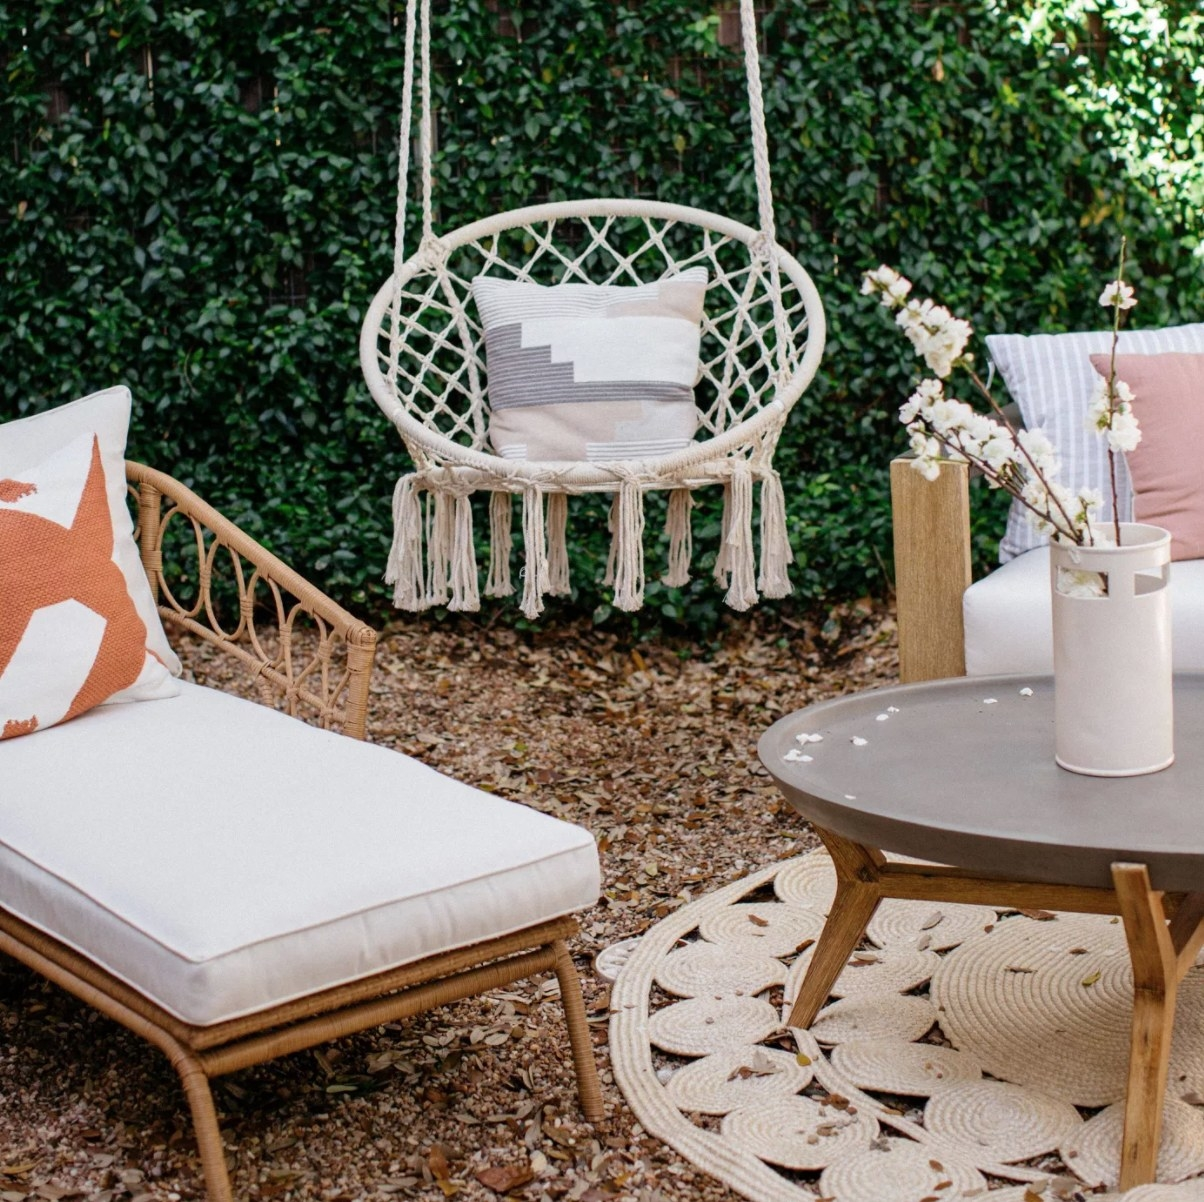 A white macrame round hanging chair set outdoors